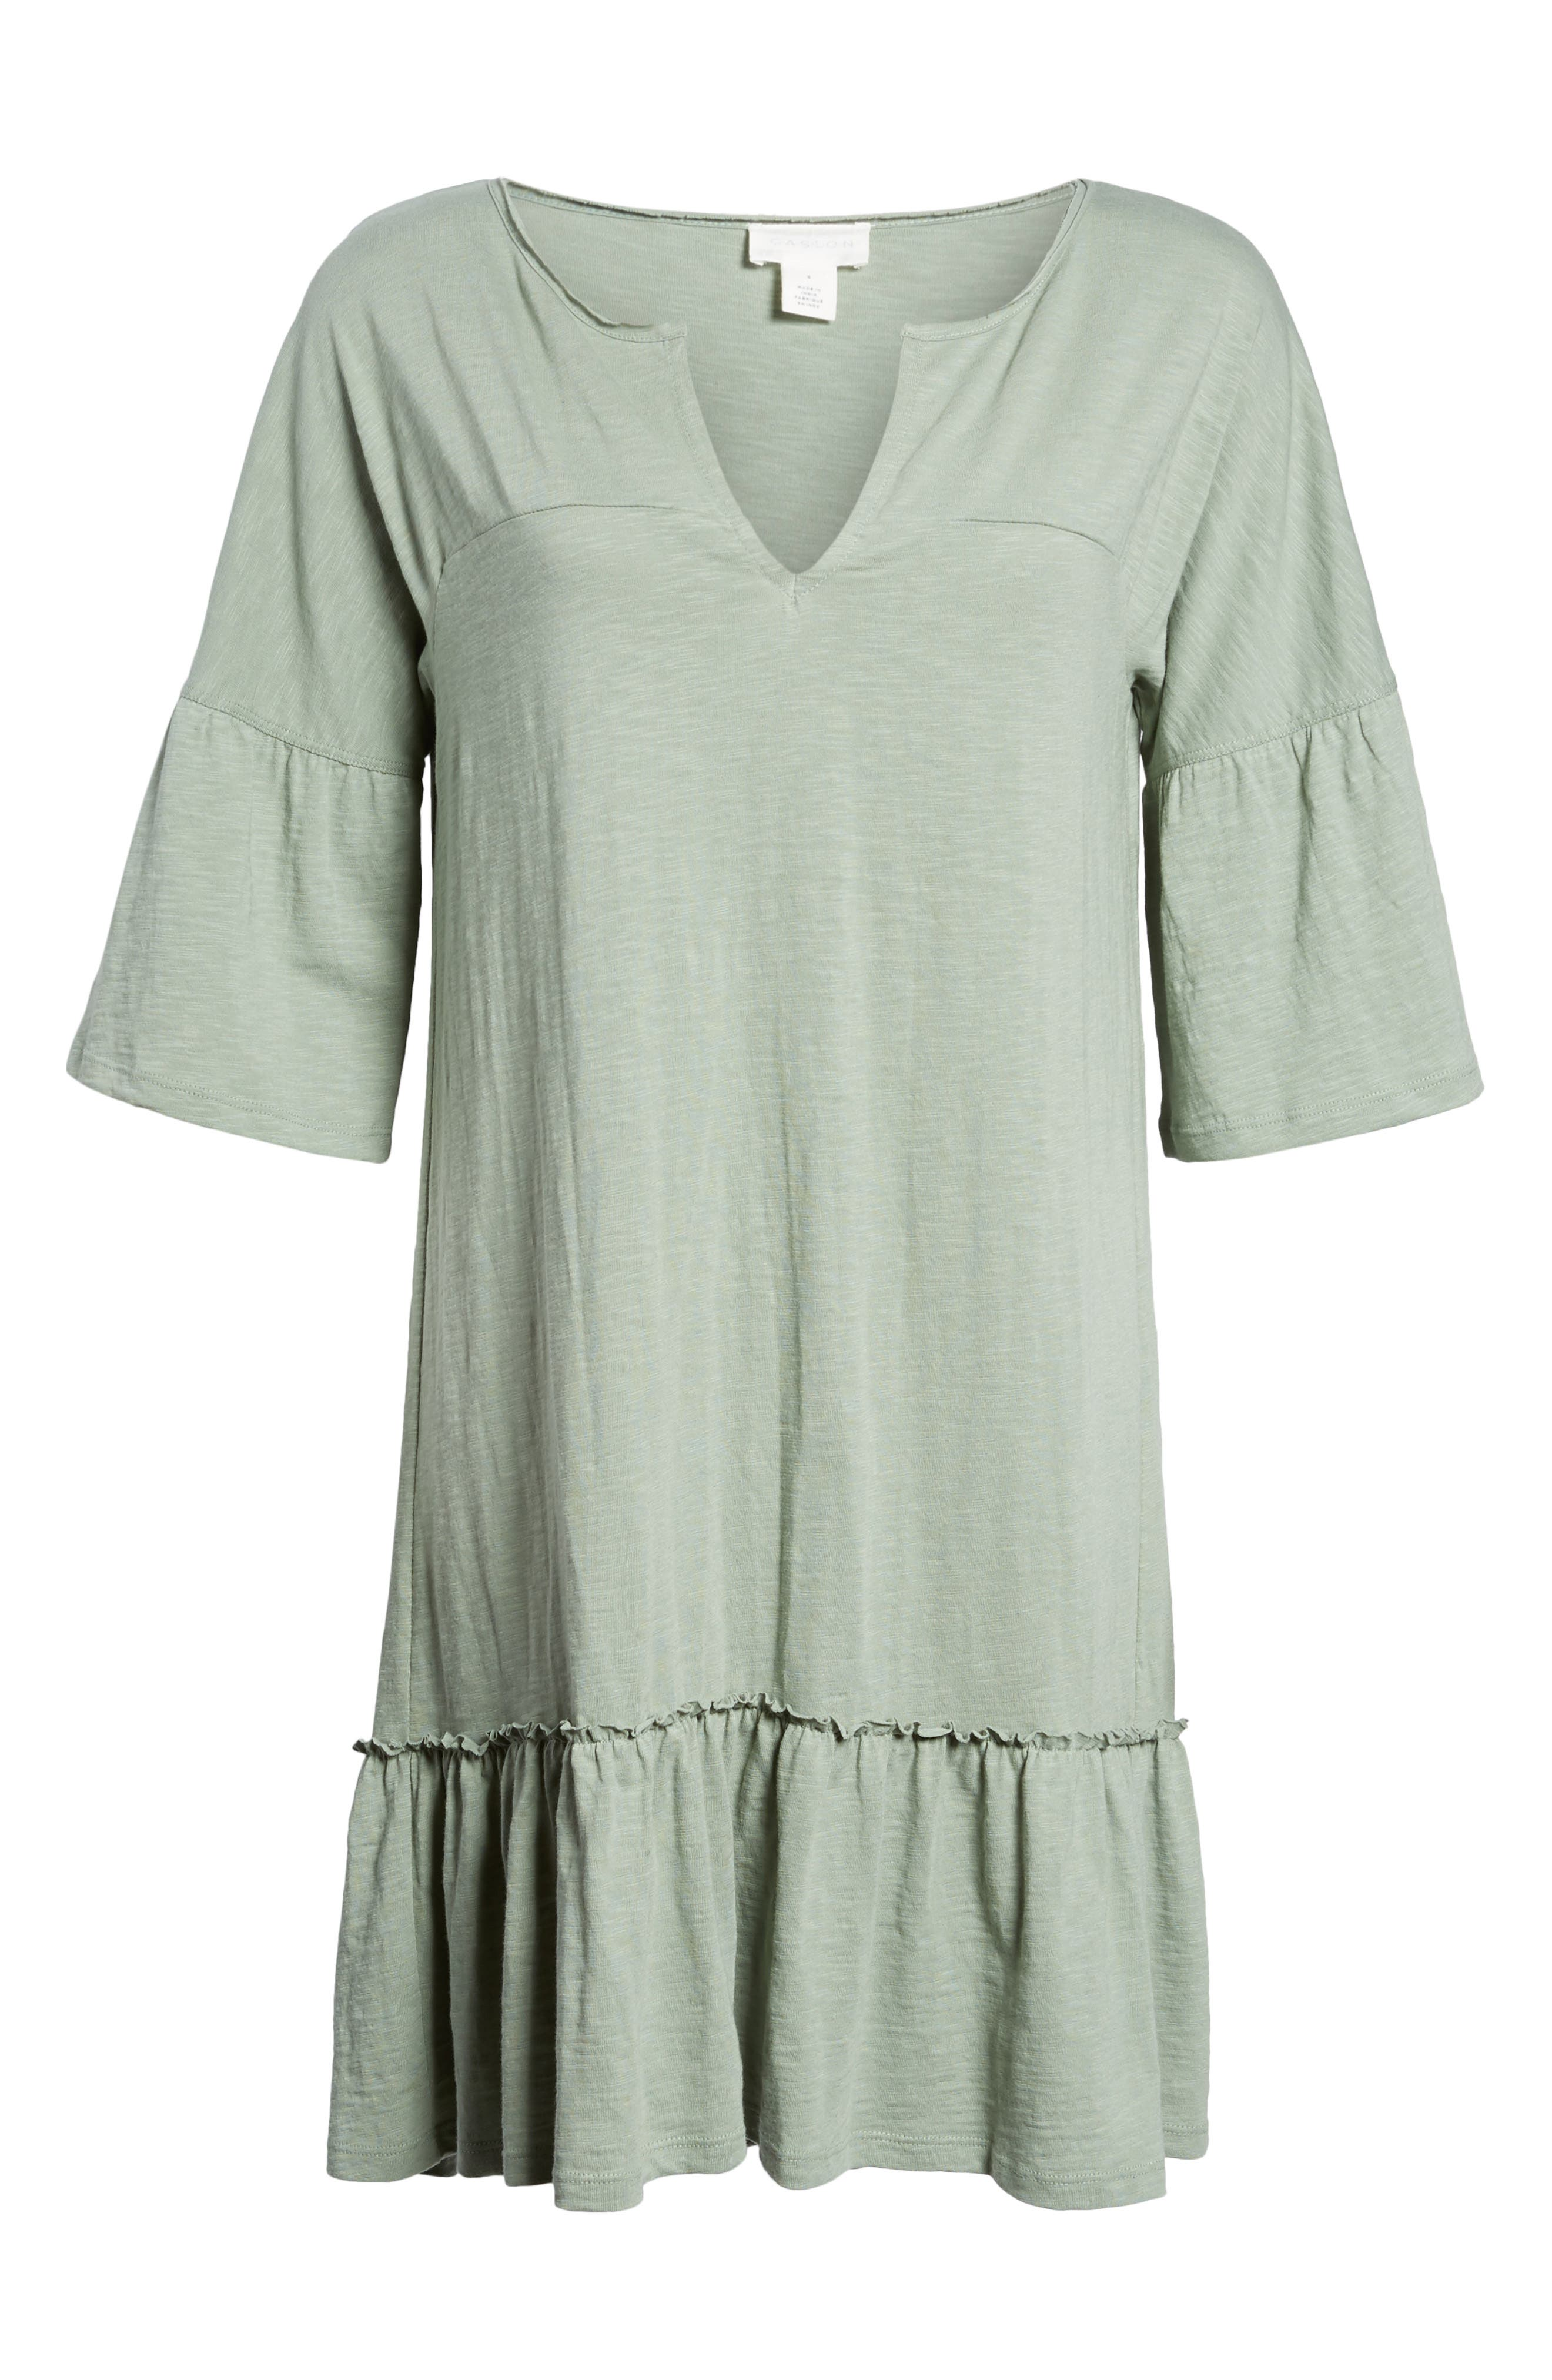 Ruffle Sleeve Cotton Dress,                             Alternate thumbnail 6, color,                             Green Lilypad